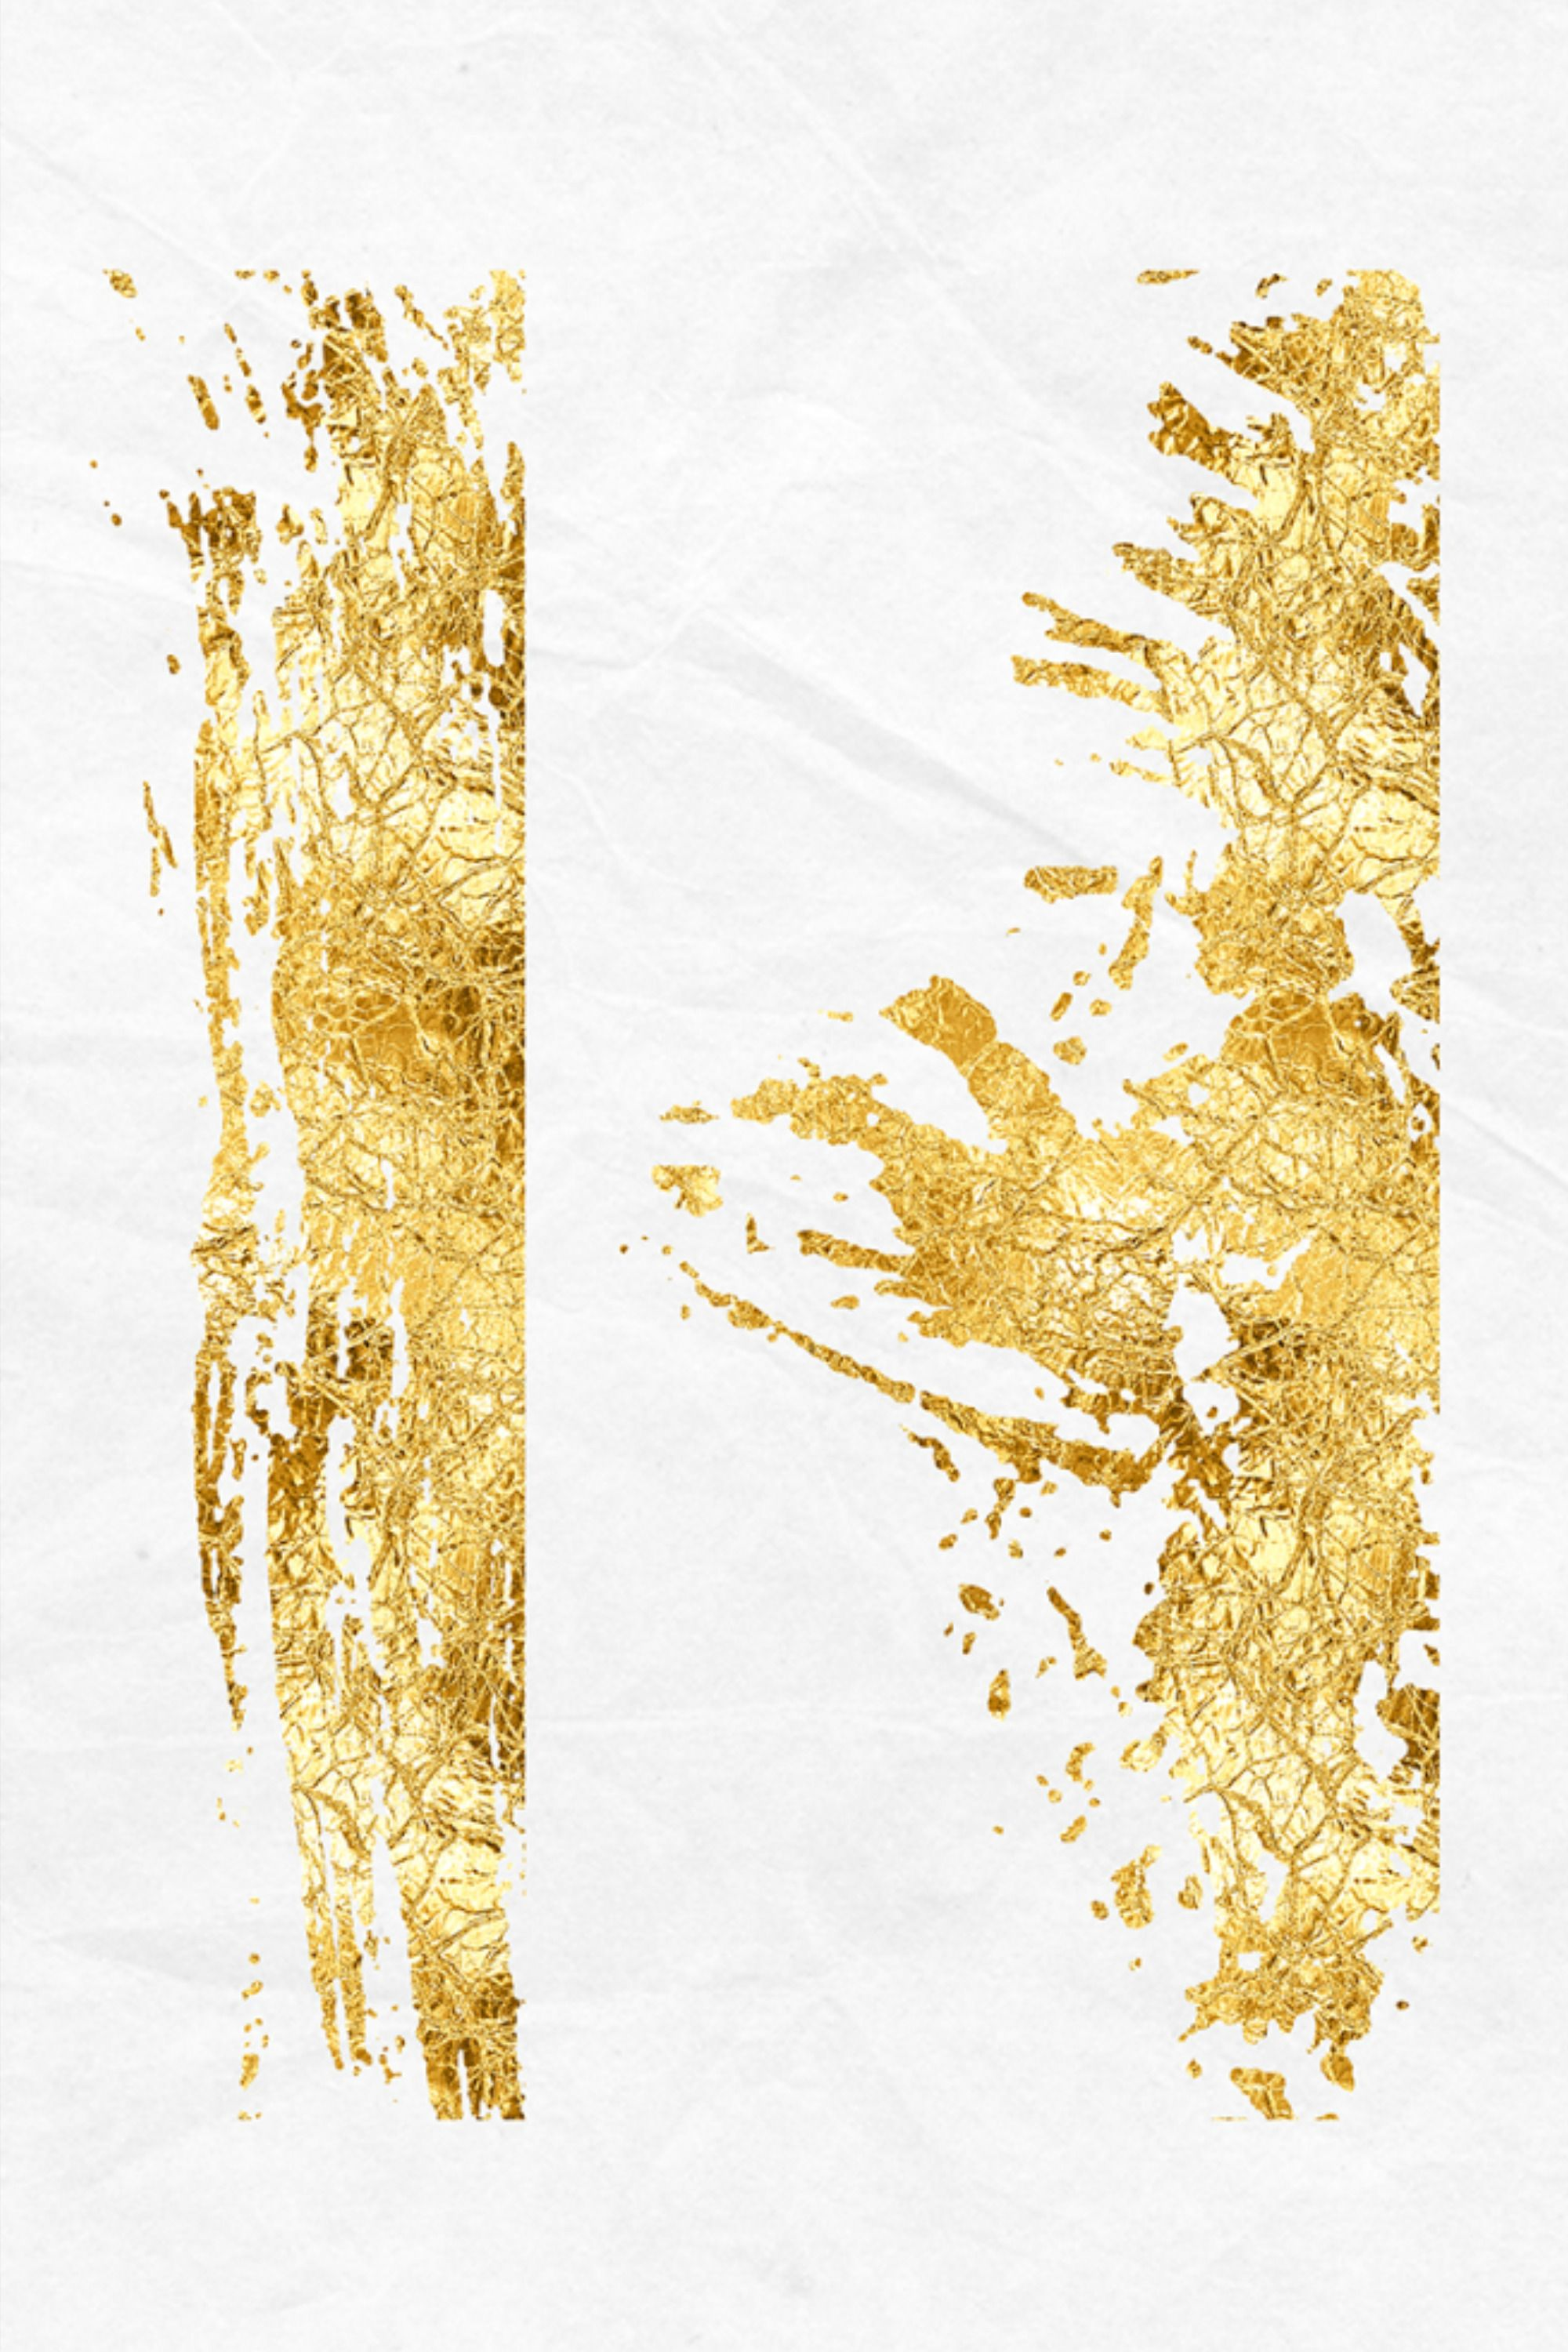 Gold Foil Flake Clipart Gold Borders Overlays Gold Foil Frames Gold Grunge Png Clipart Gold Leaf Art Gold Design Elemets Gold Clipart Gold Leaf Art Gold Design Background Gold Clipart